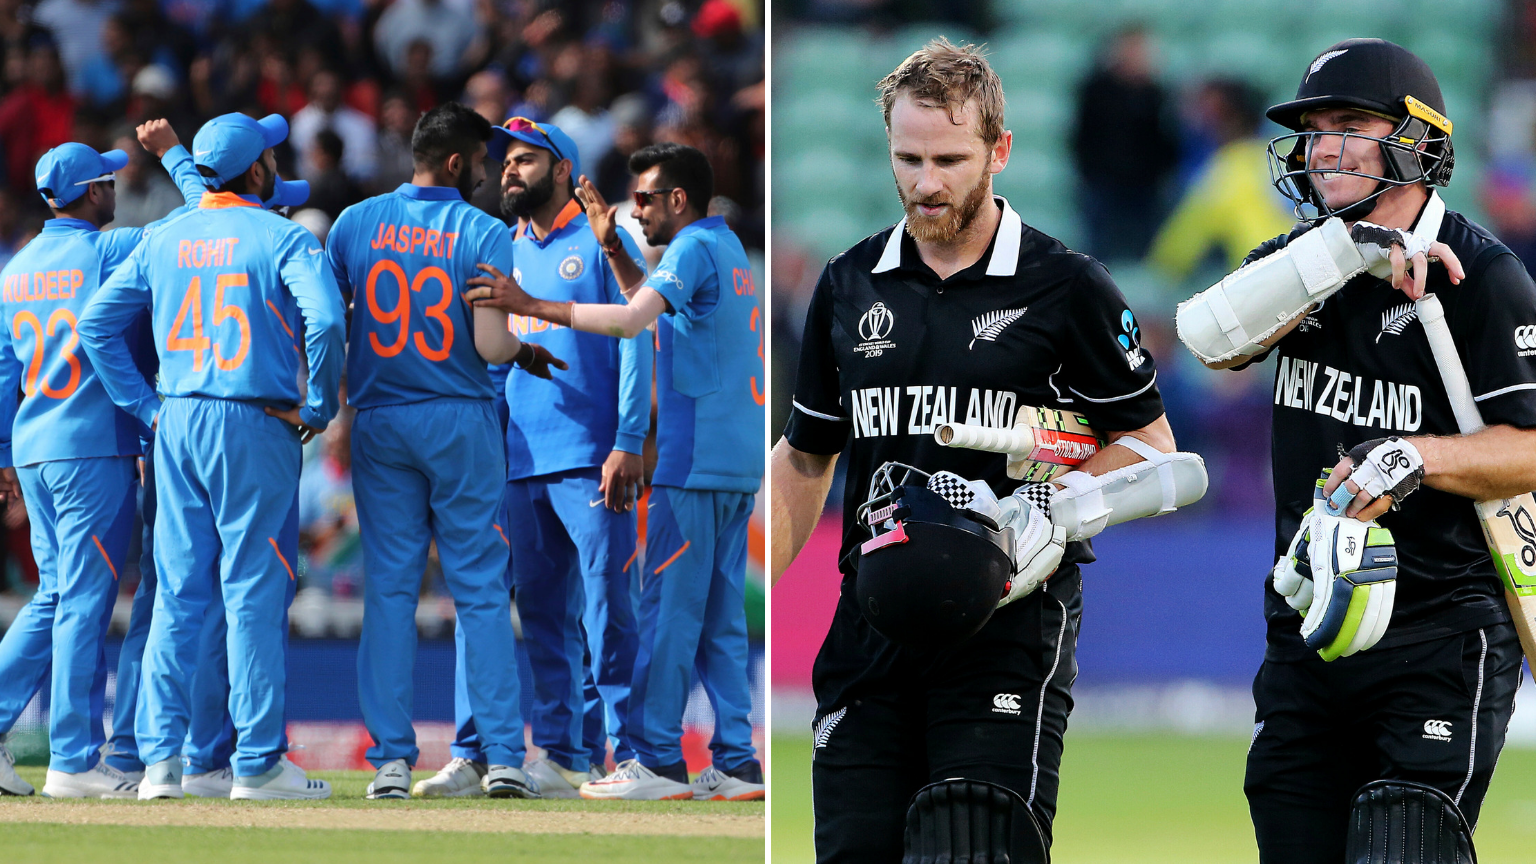 Dhawan-less Team India Will Look to End New Zealand's Winning Run